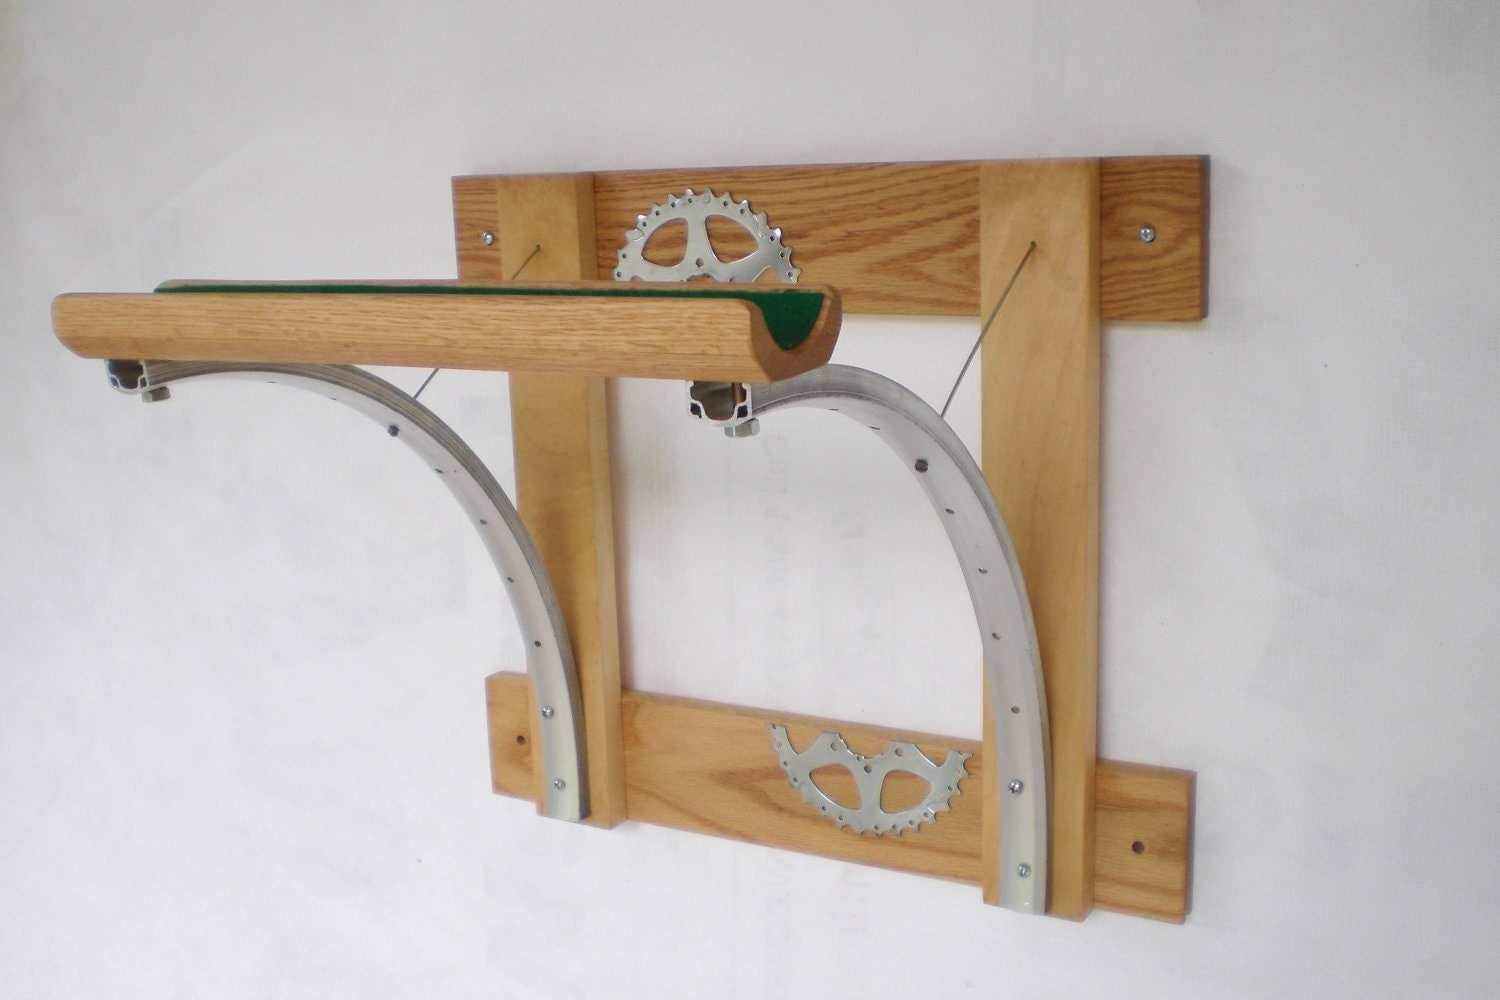 How to make a small wood bridge, birdhouse building plans ...